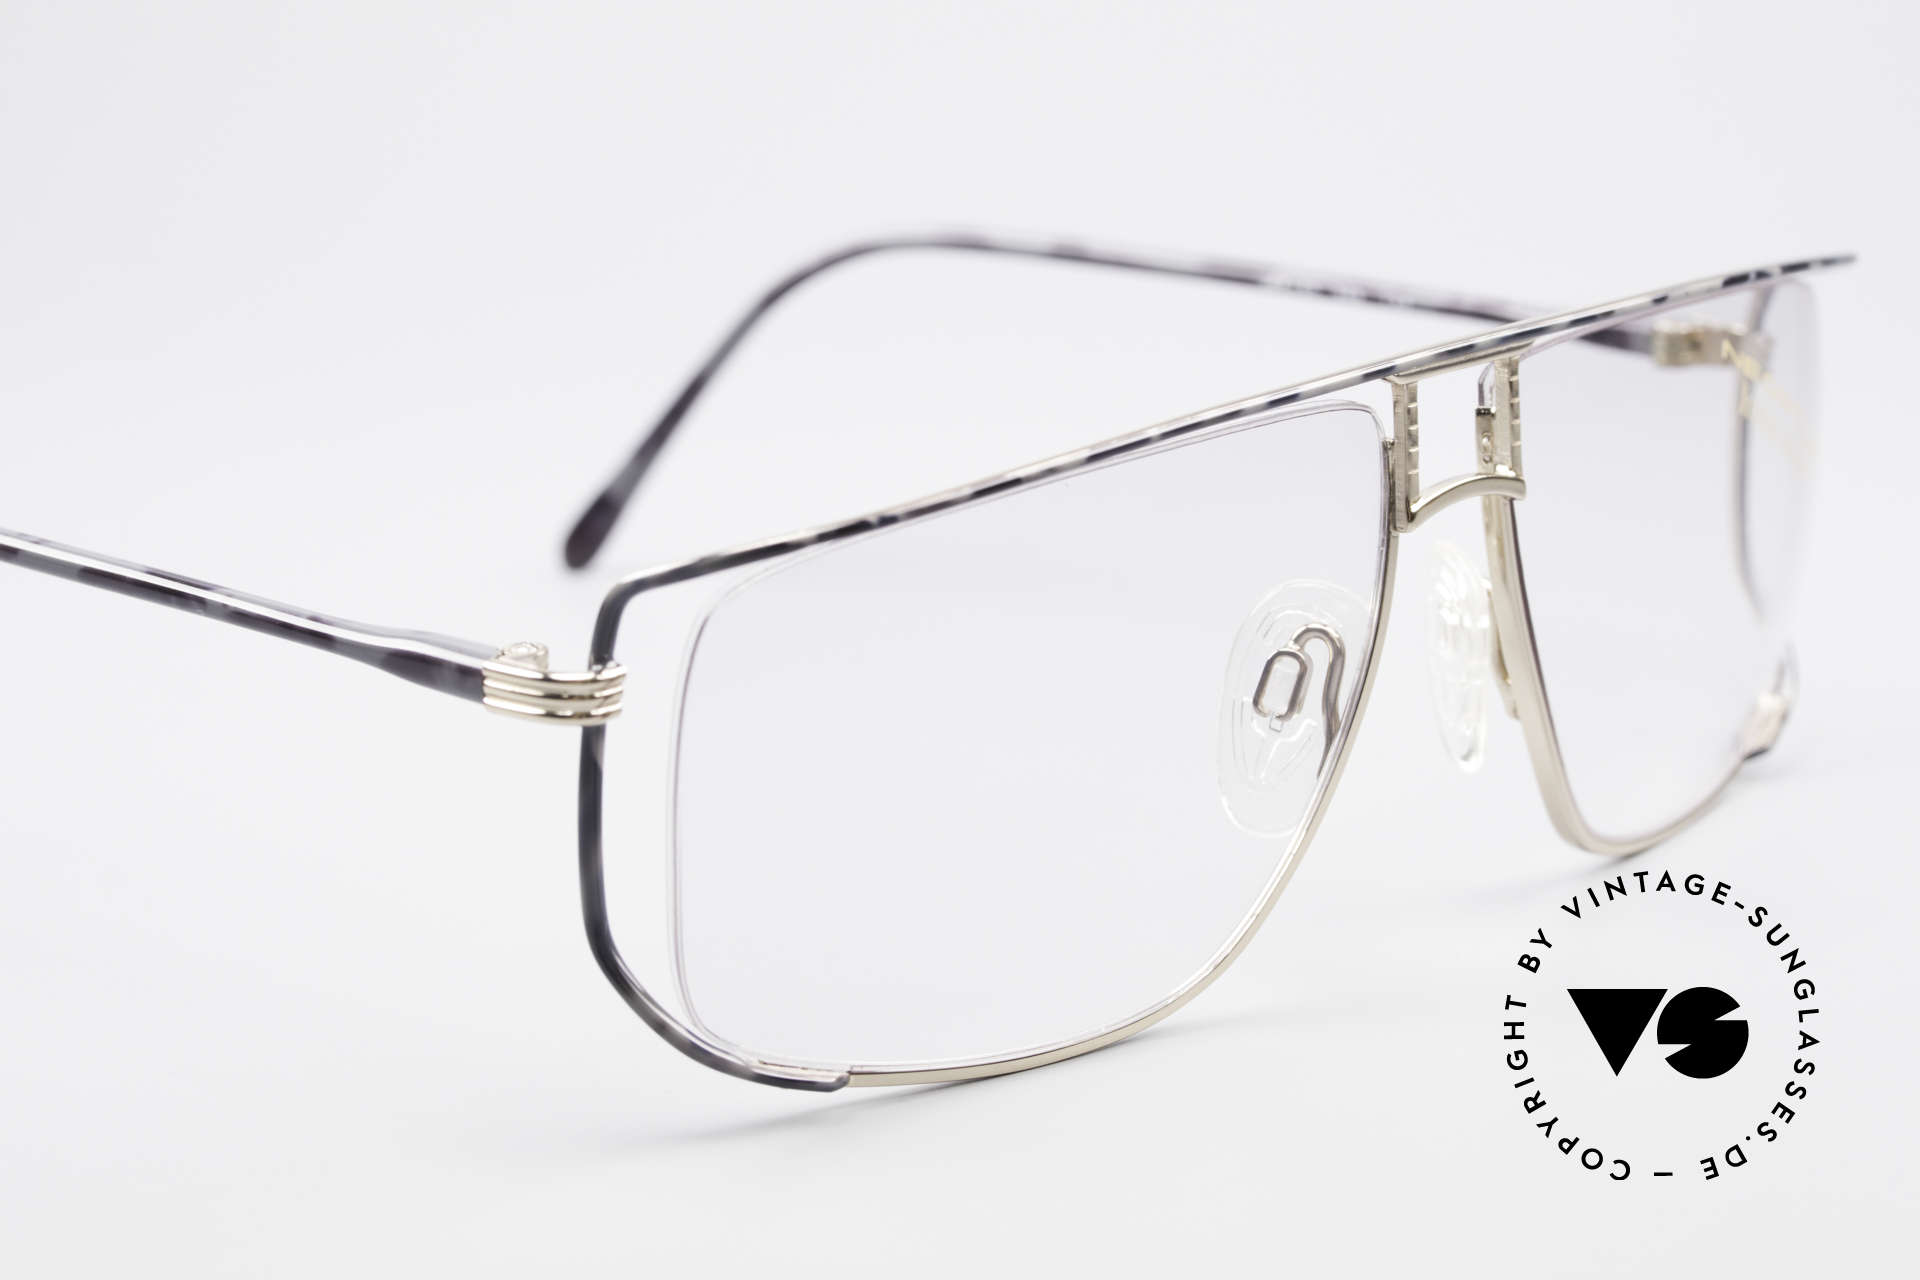 Neostyle Jet 30 Small True Vintage No Retro Frame, the demo lenses can be replaced with lenses of any kind, Made for Men and Women